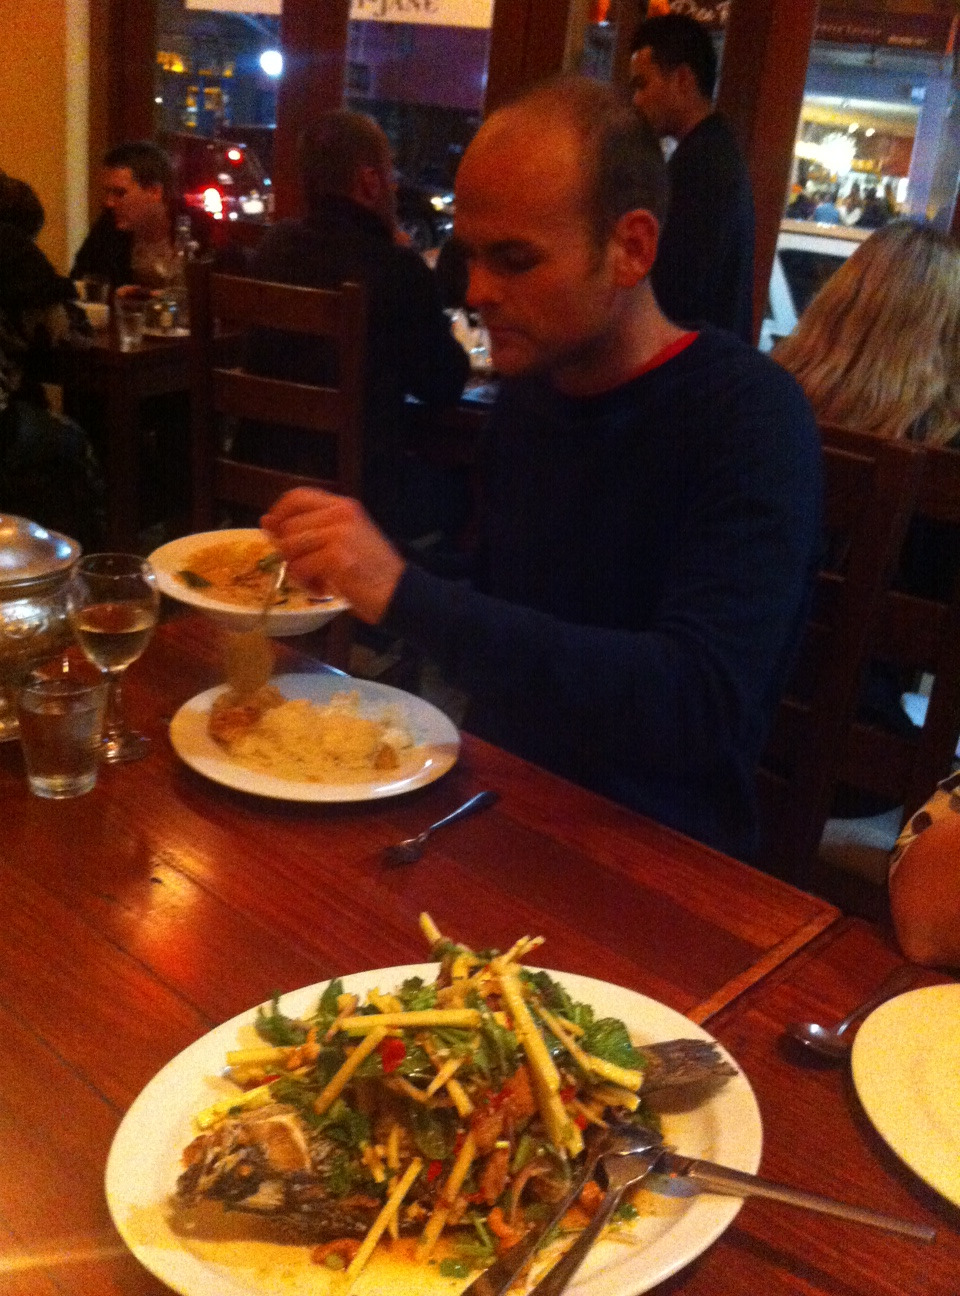 John loading up on Luv-a-duck before attempting the Barramundi Salad